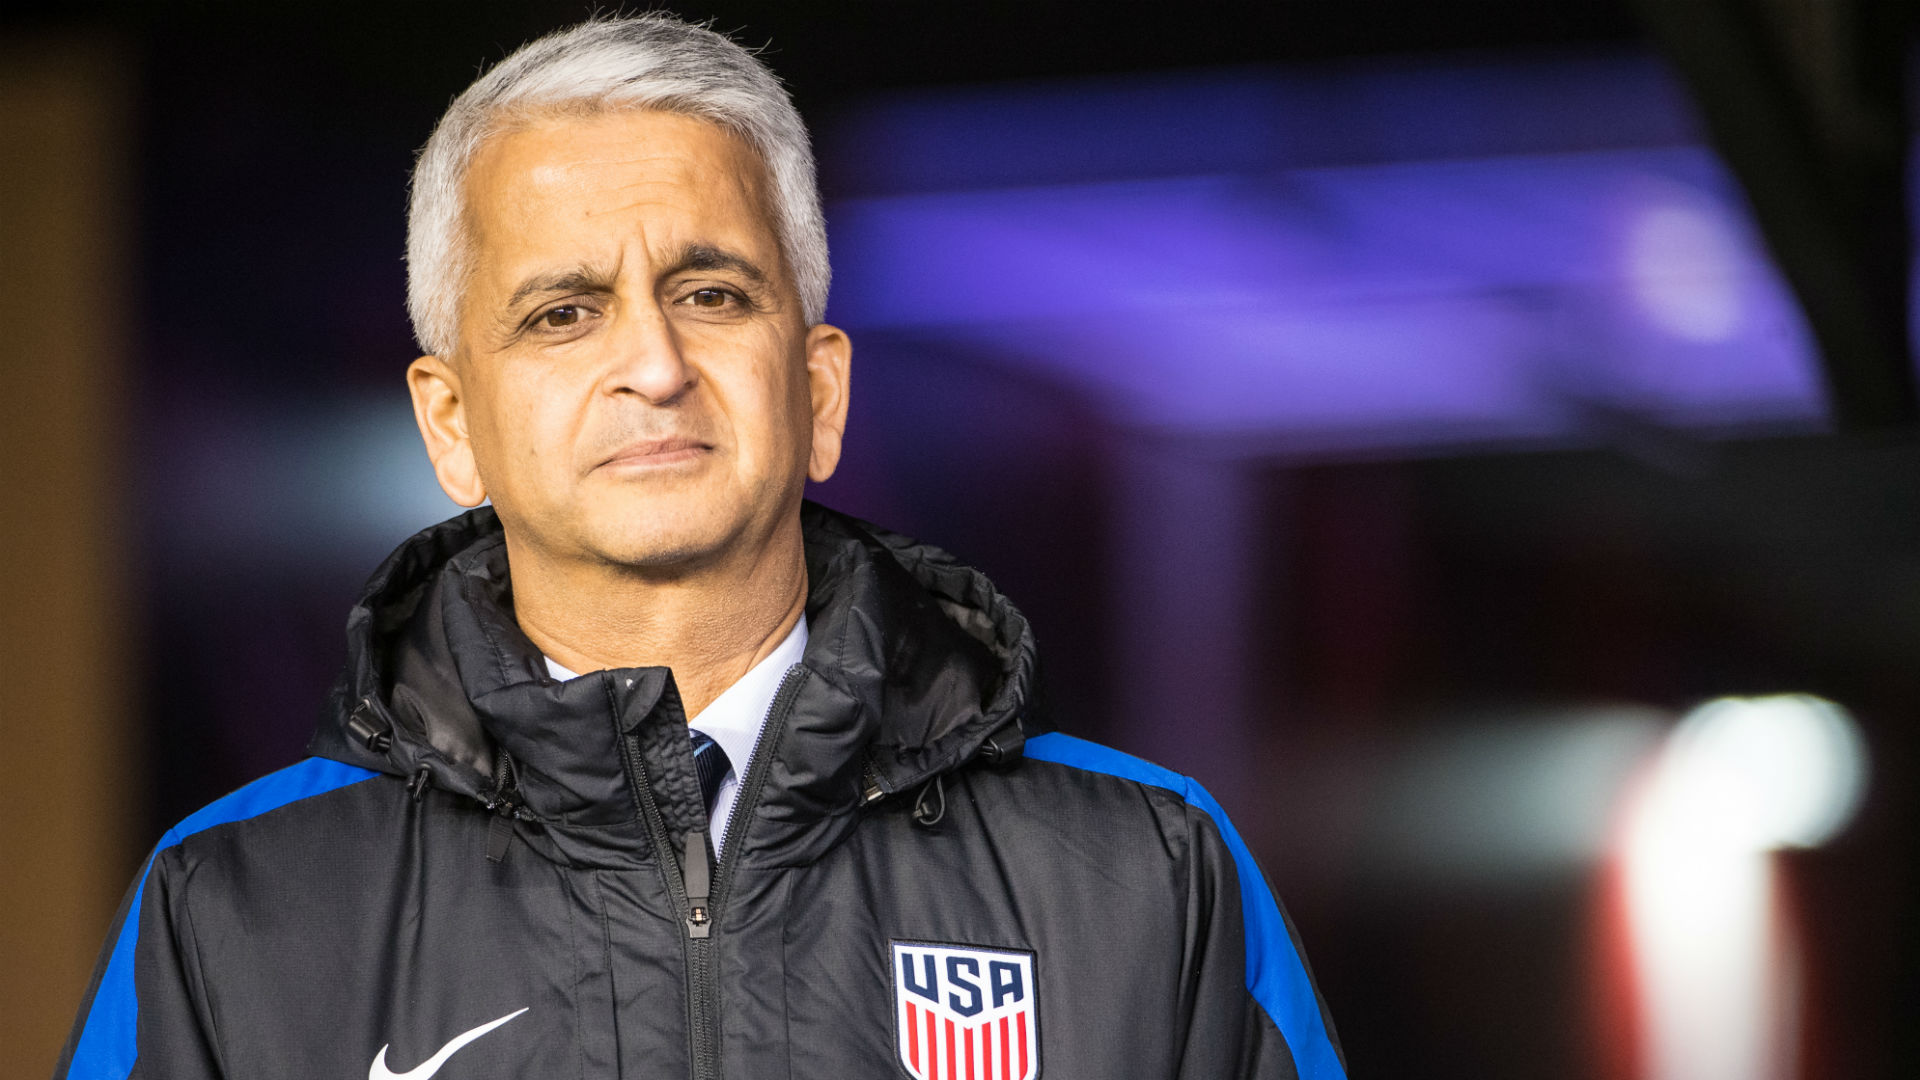 Sunil Gulati may not run for US Soccer presidency